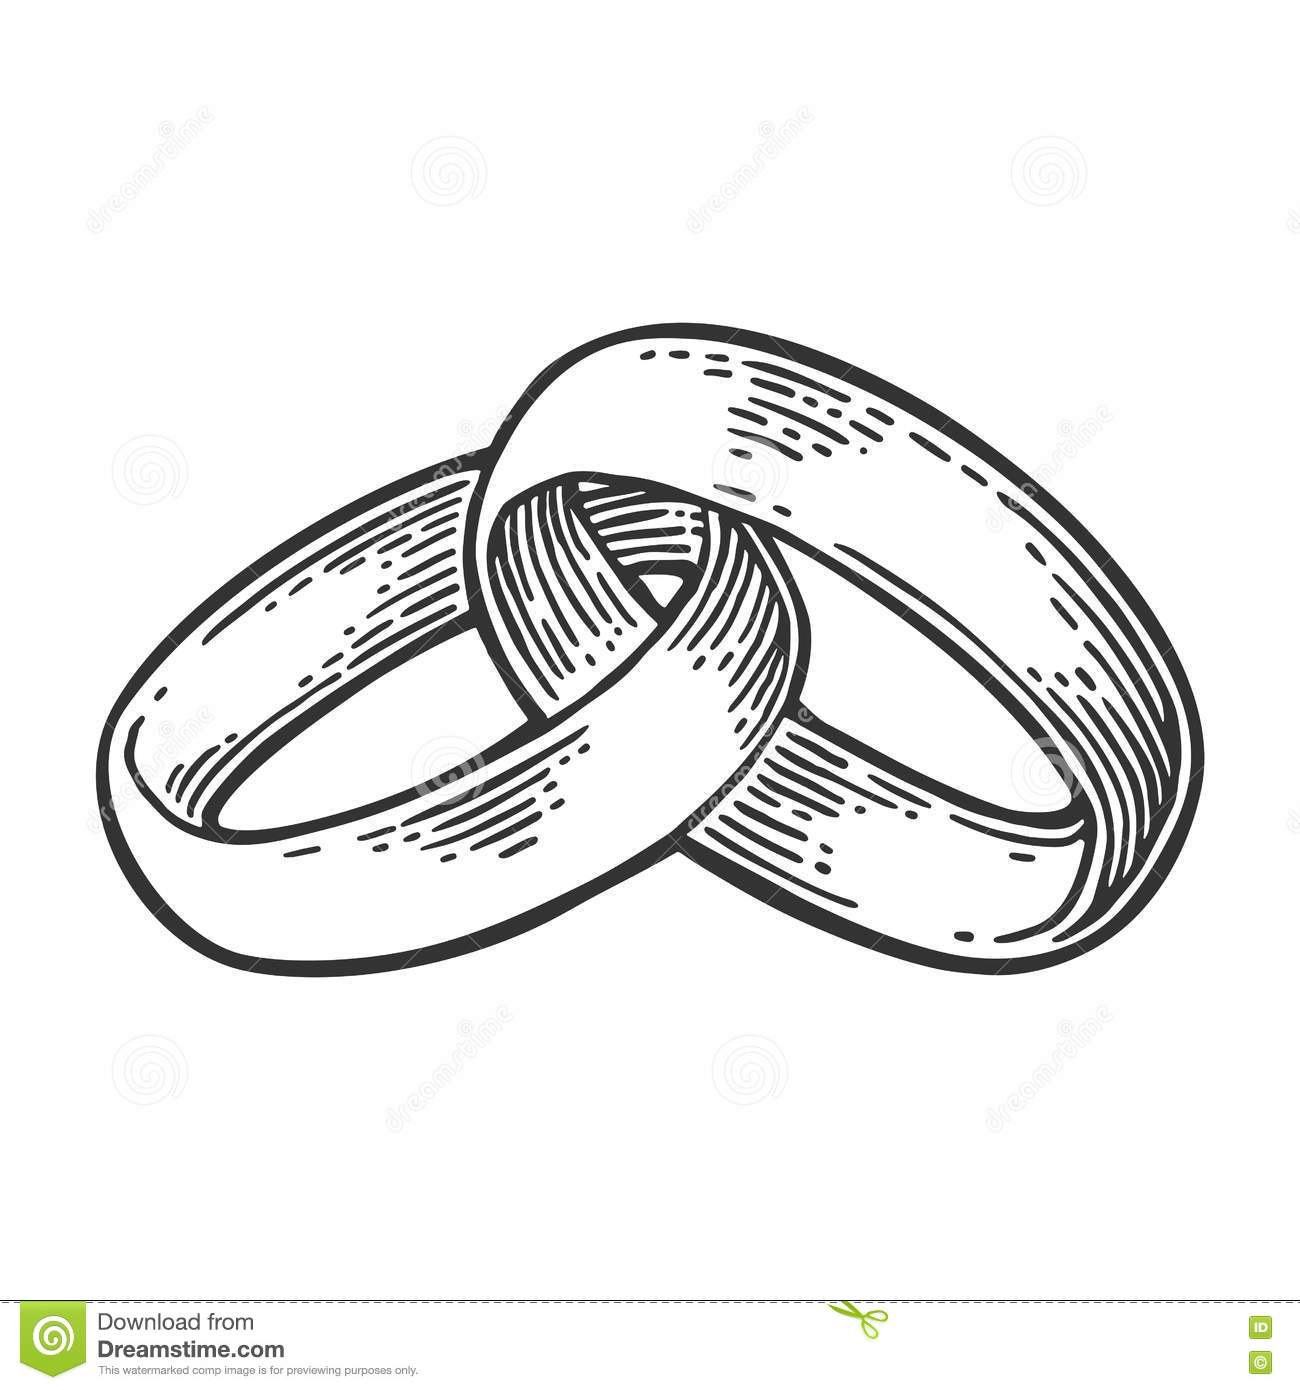 Wedding Rings Vintage Black Vector Engraving Illustration